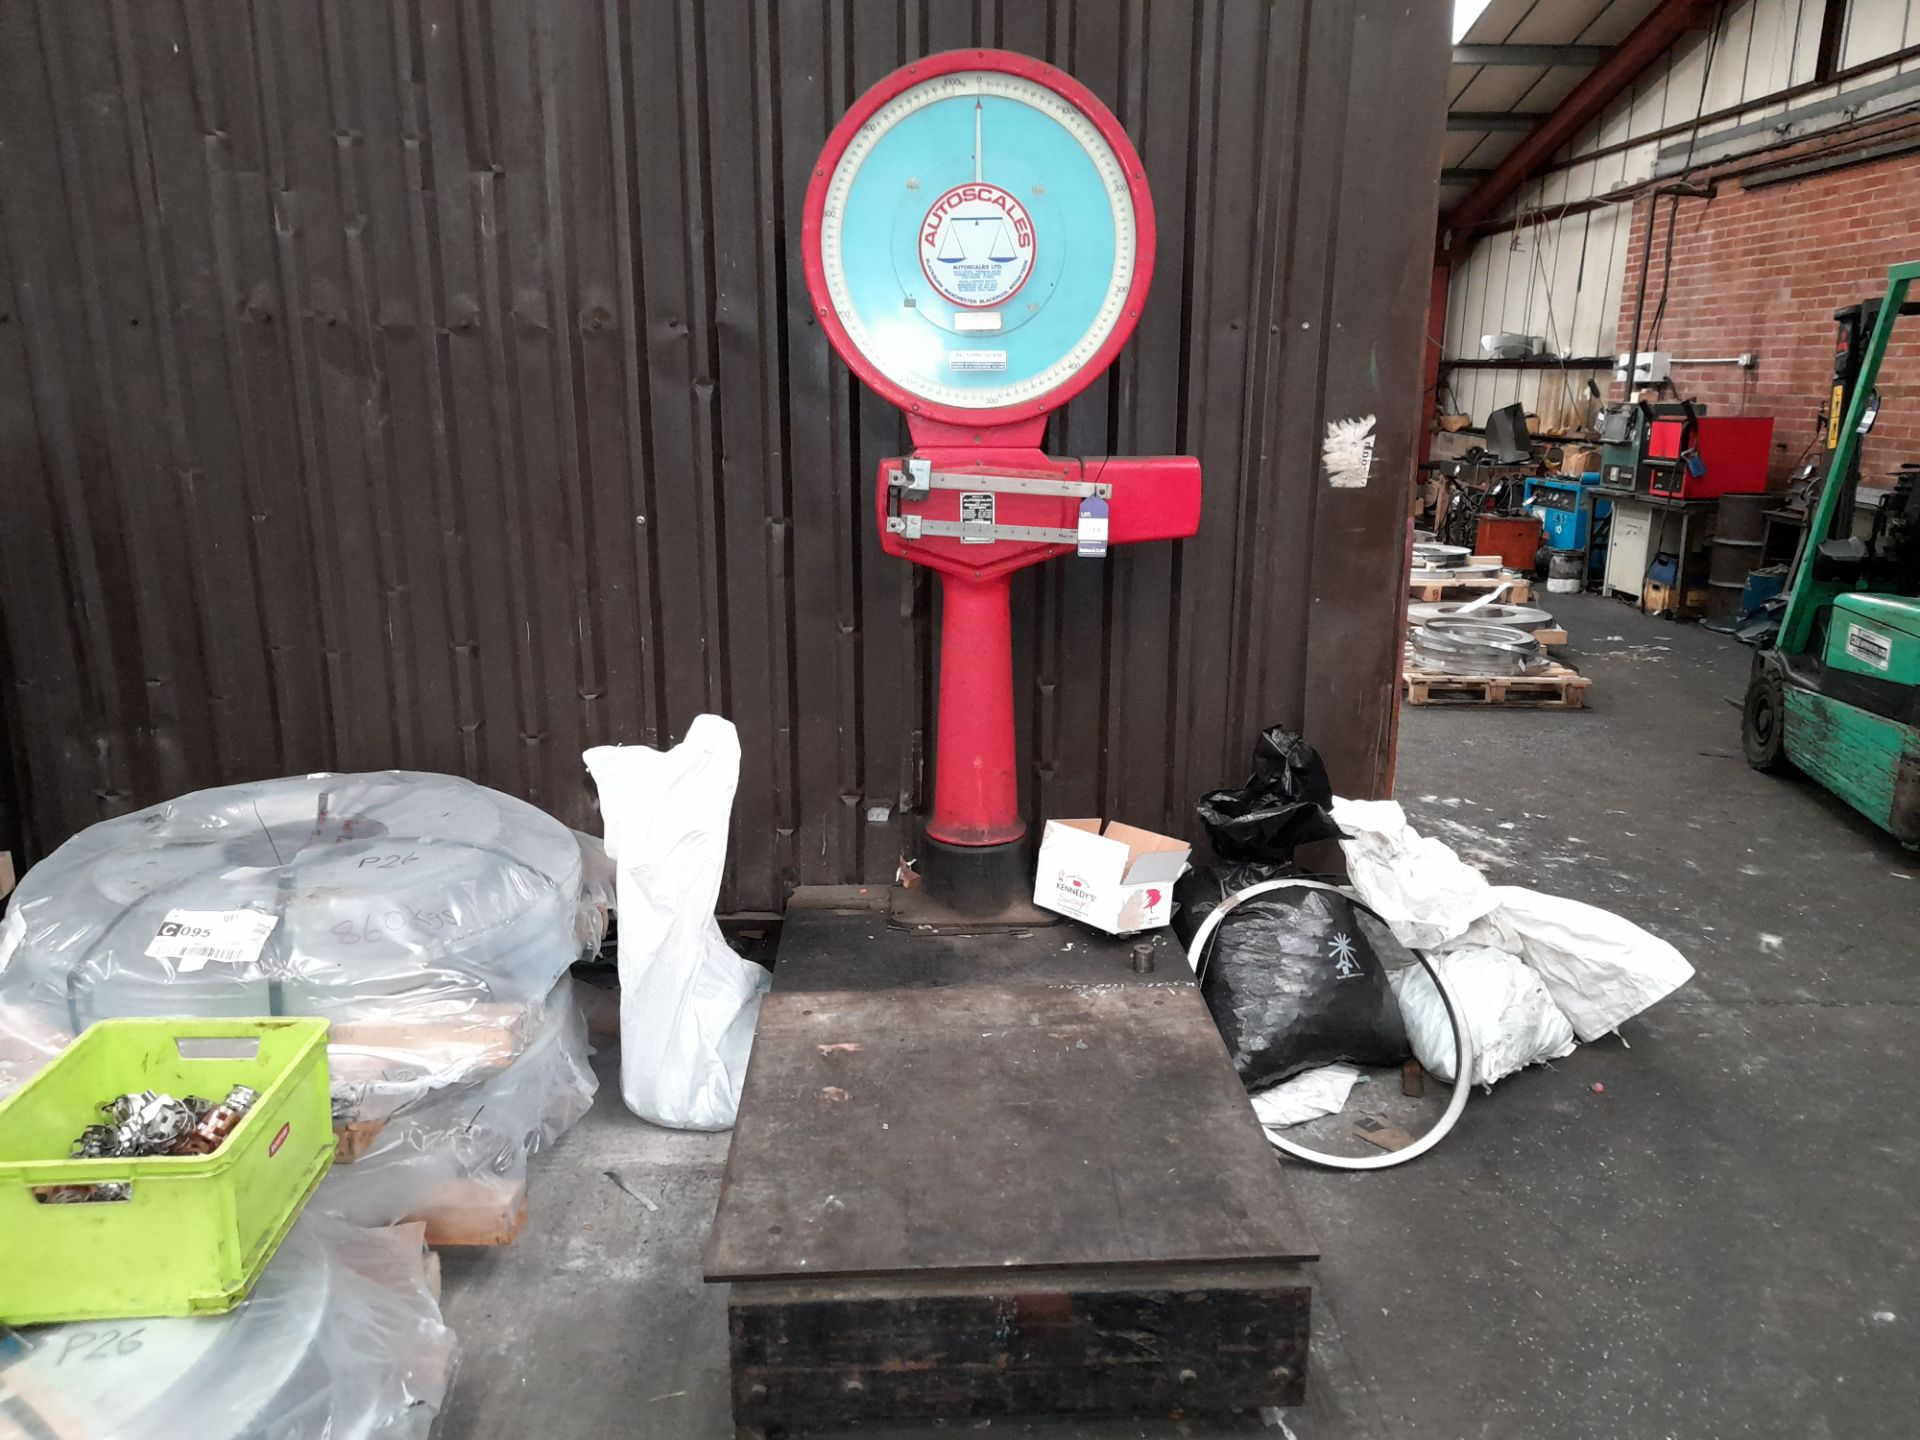 Auto Scales Floor Standing Analogue Scale, 1500 KG